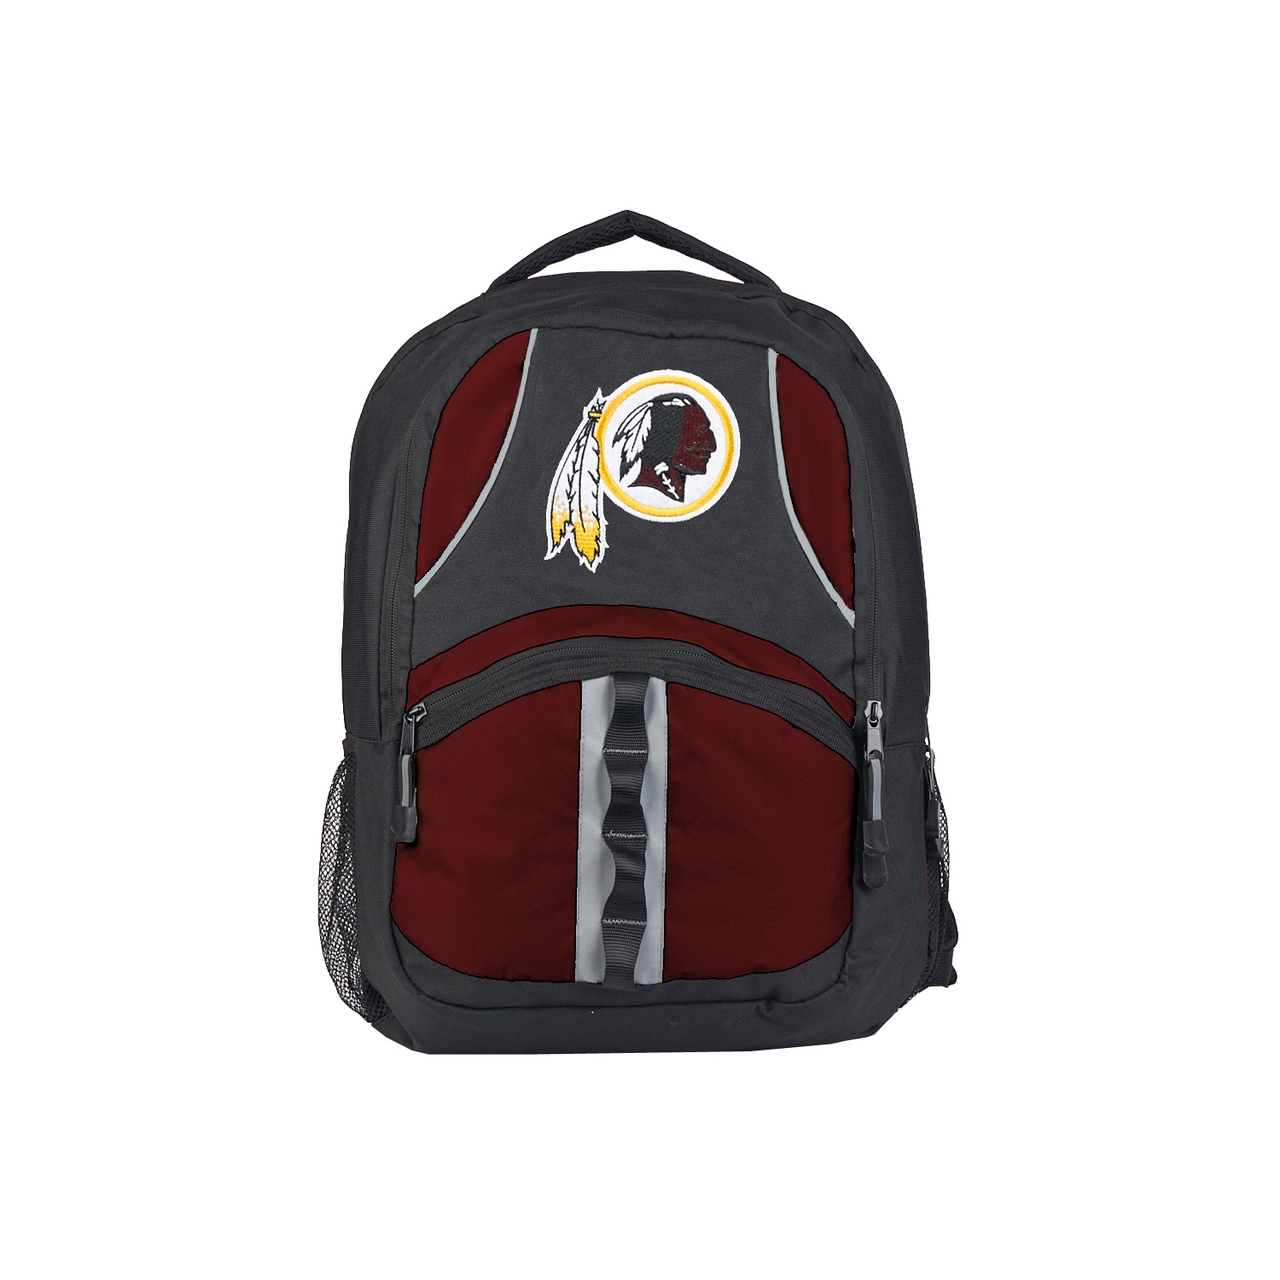 Nfl Football Washington Redskins Tumblers And Pint Glasses - 8791890648 - Washington Redskins Backpack Captain Style Red And Black 8791890648